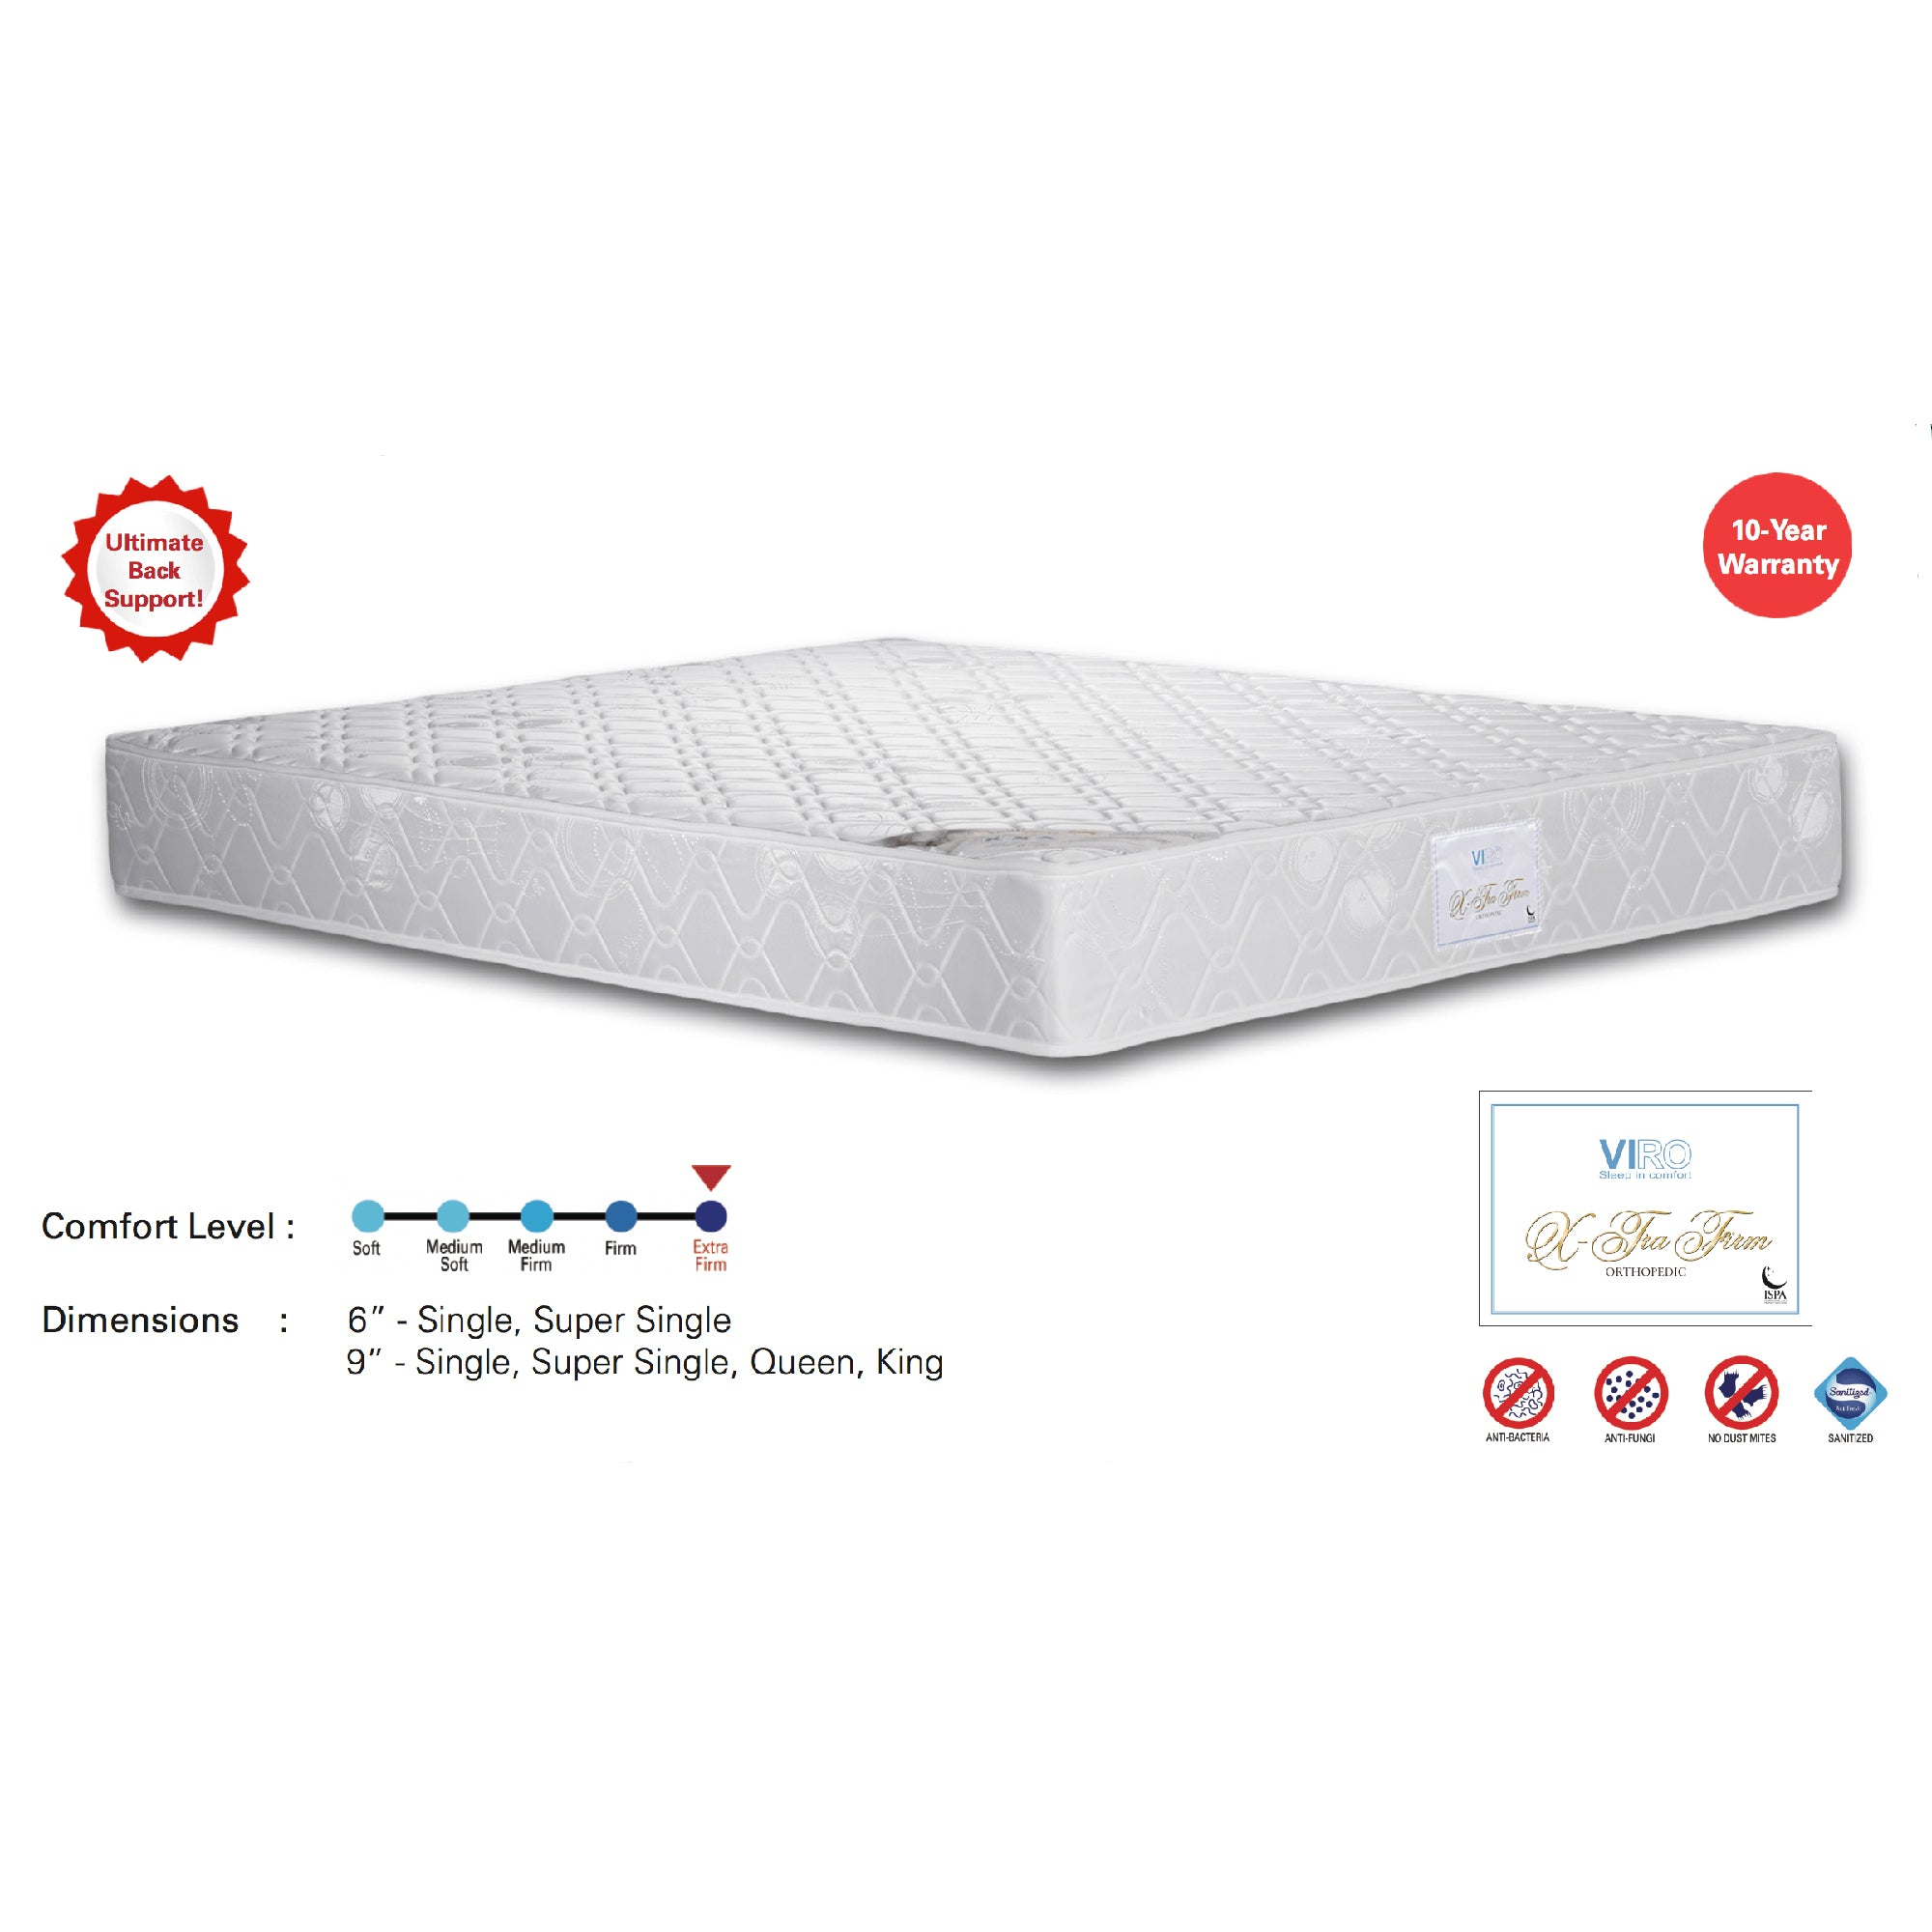 Viro X-Tra Firm Spring Mattress (3.5 Feet Super Single Size x 6